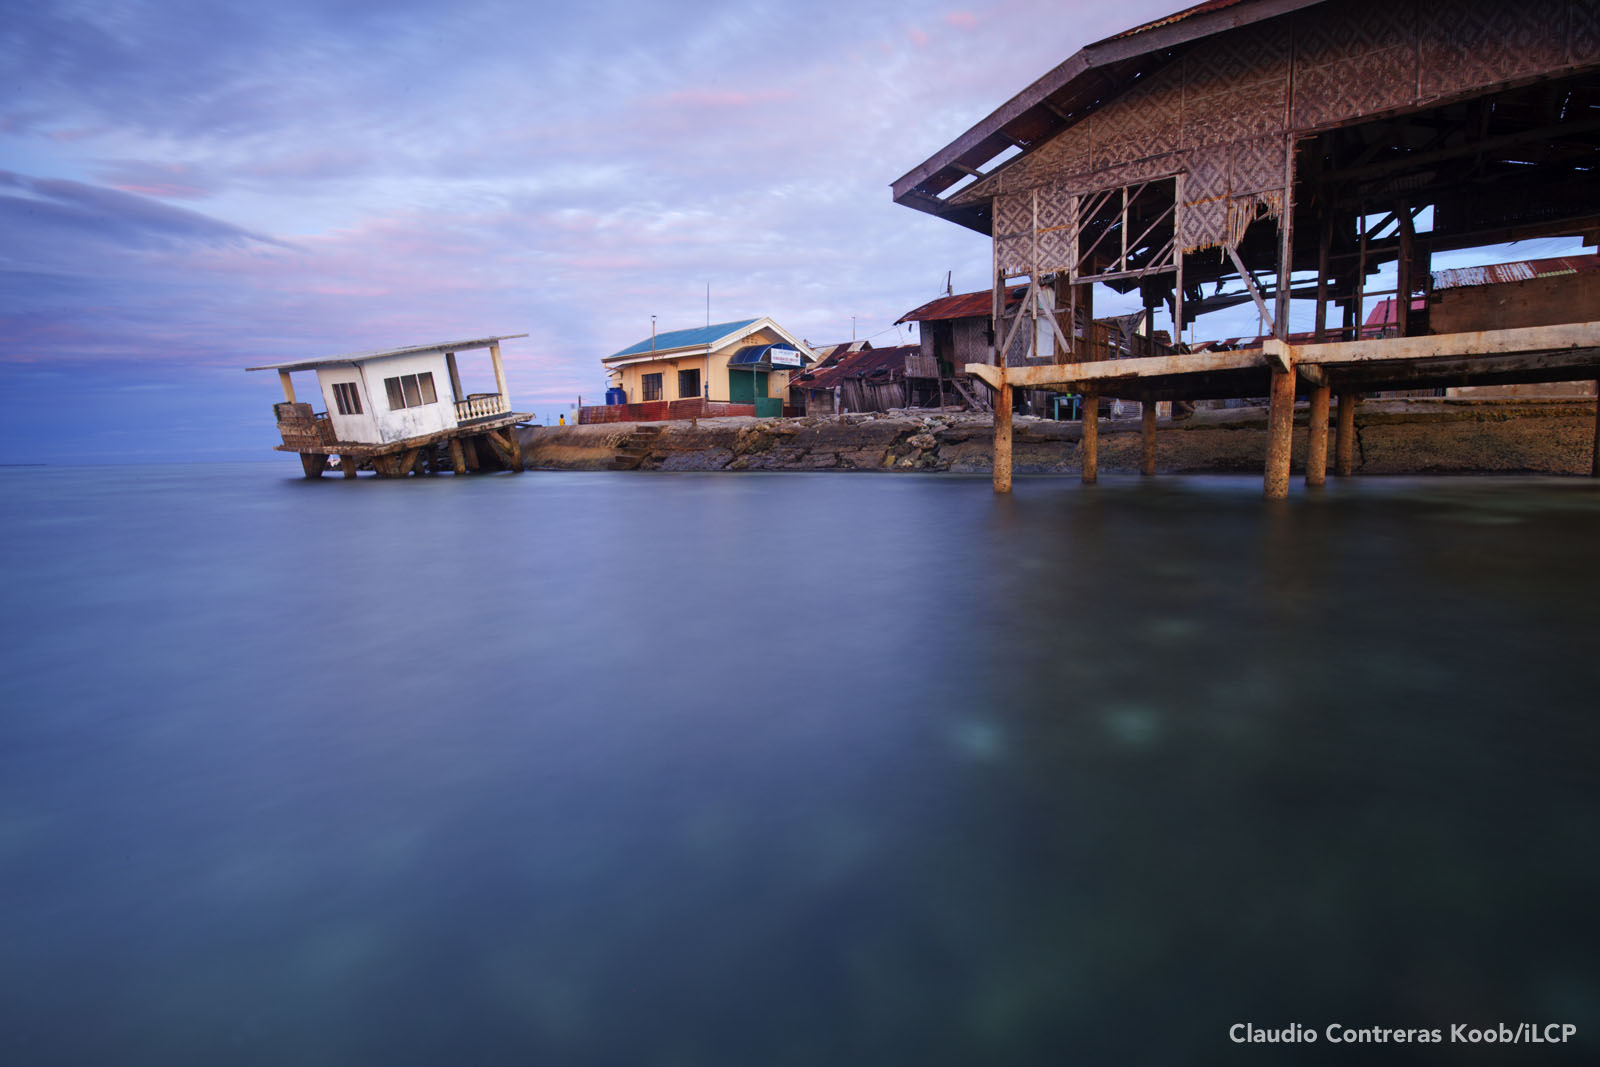 A fishing village spills out into the sea.  Claudio Contreras Koob/iLCP